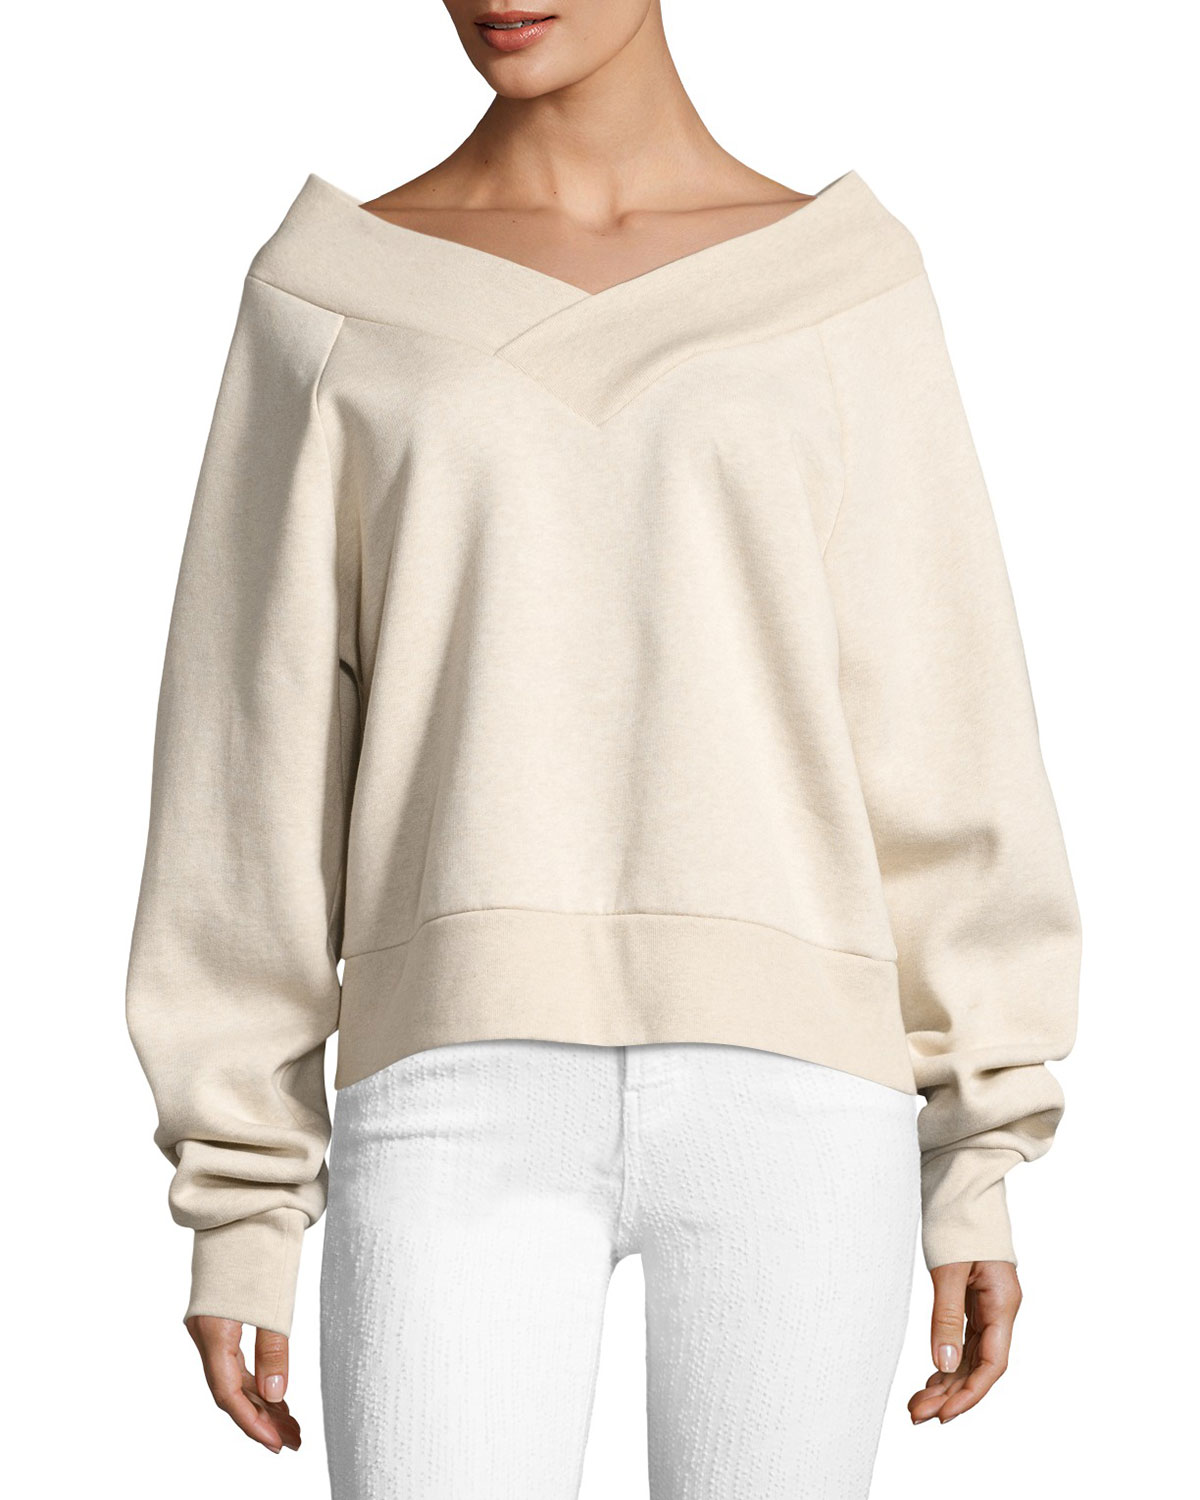 Falacho V-Neck Long-Sleeve Sweatshirt